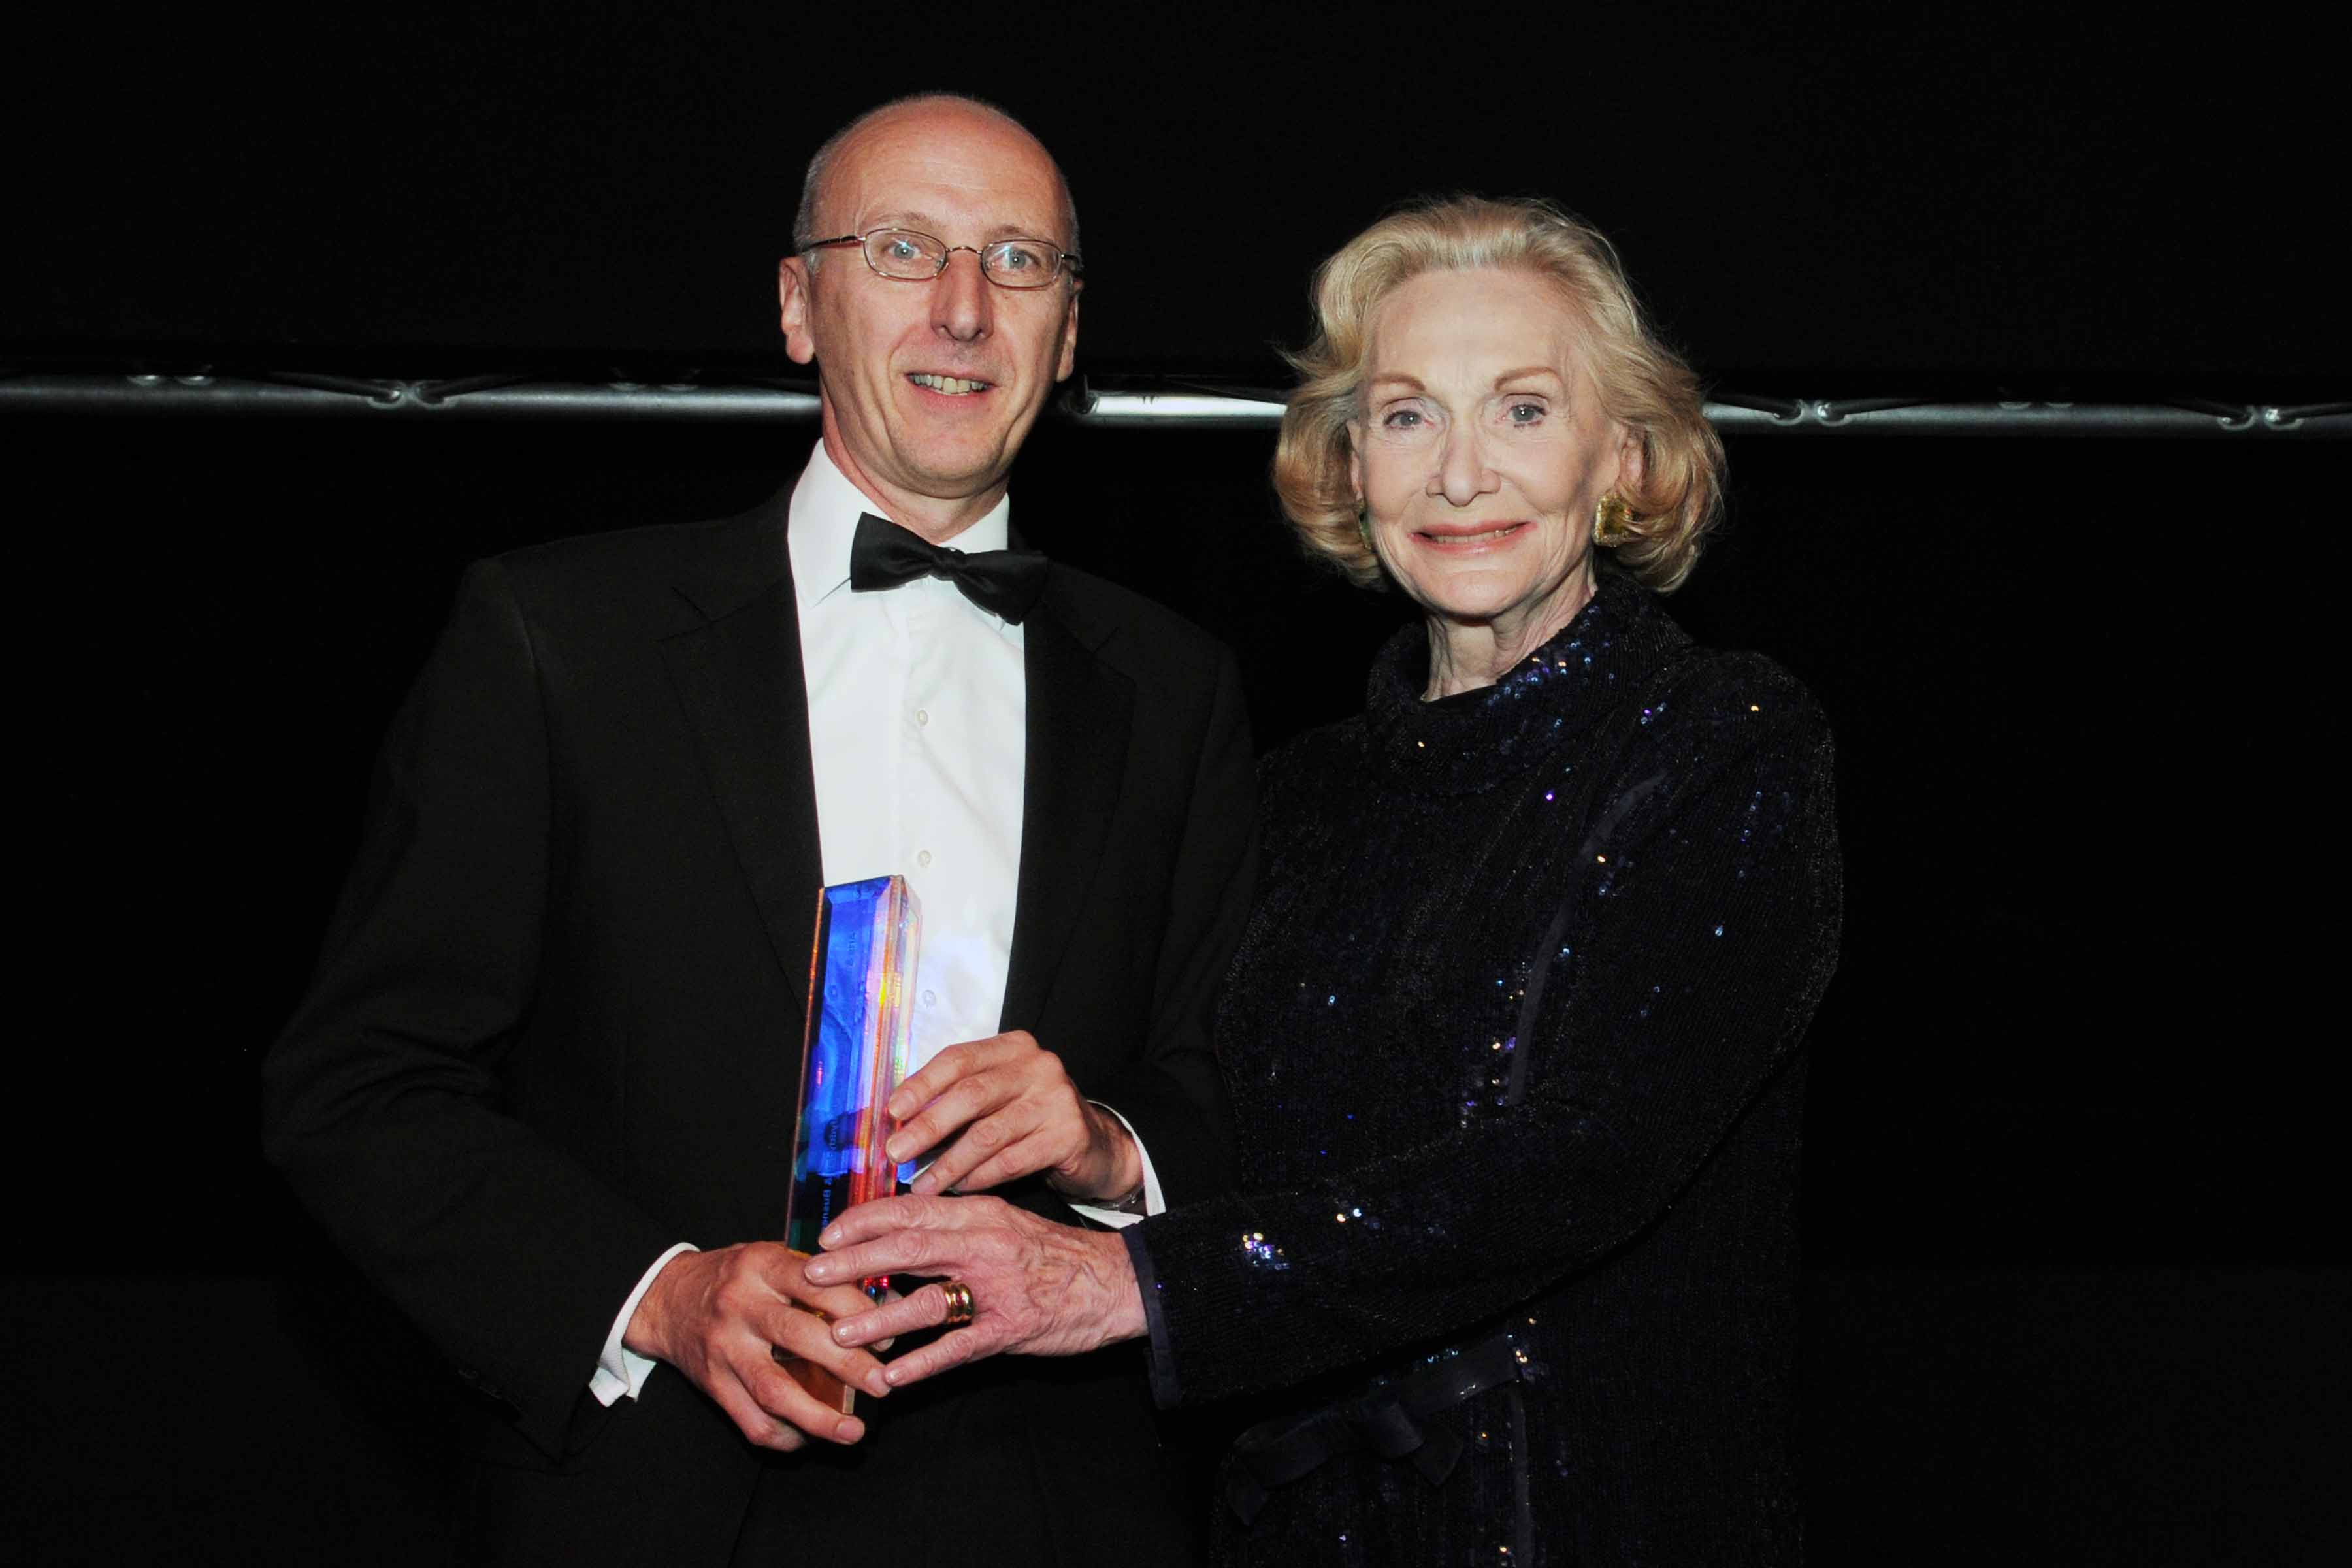 Admiral Business of the Year Award 2012